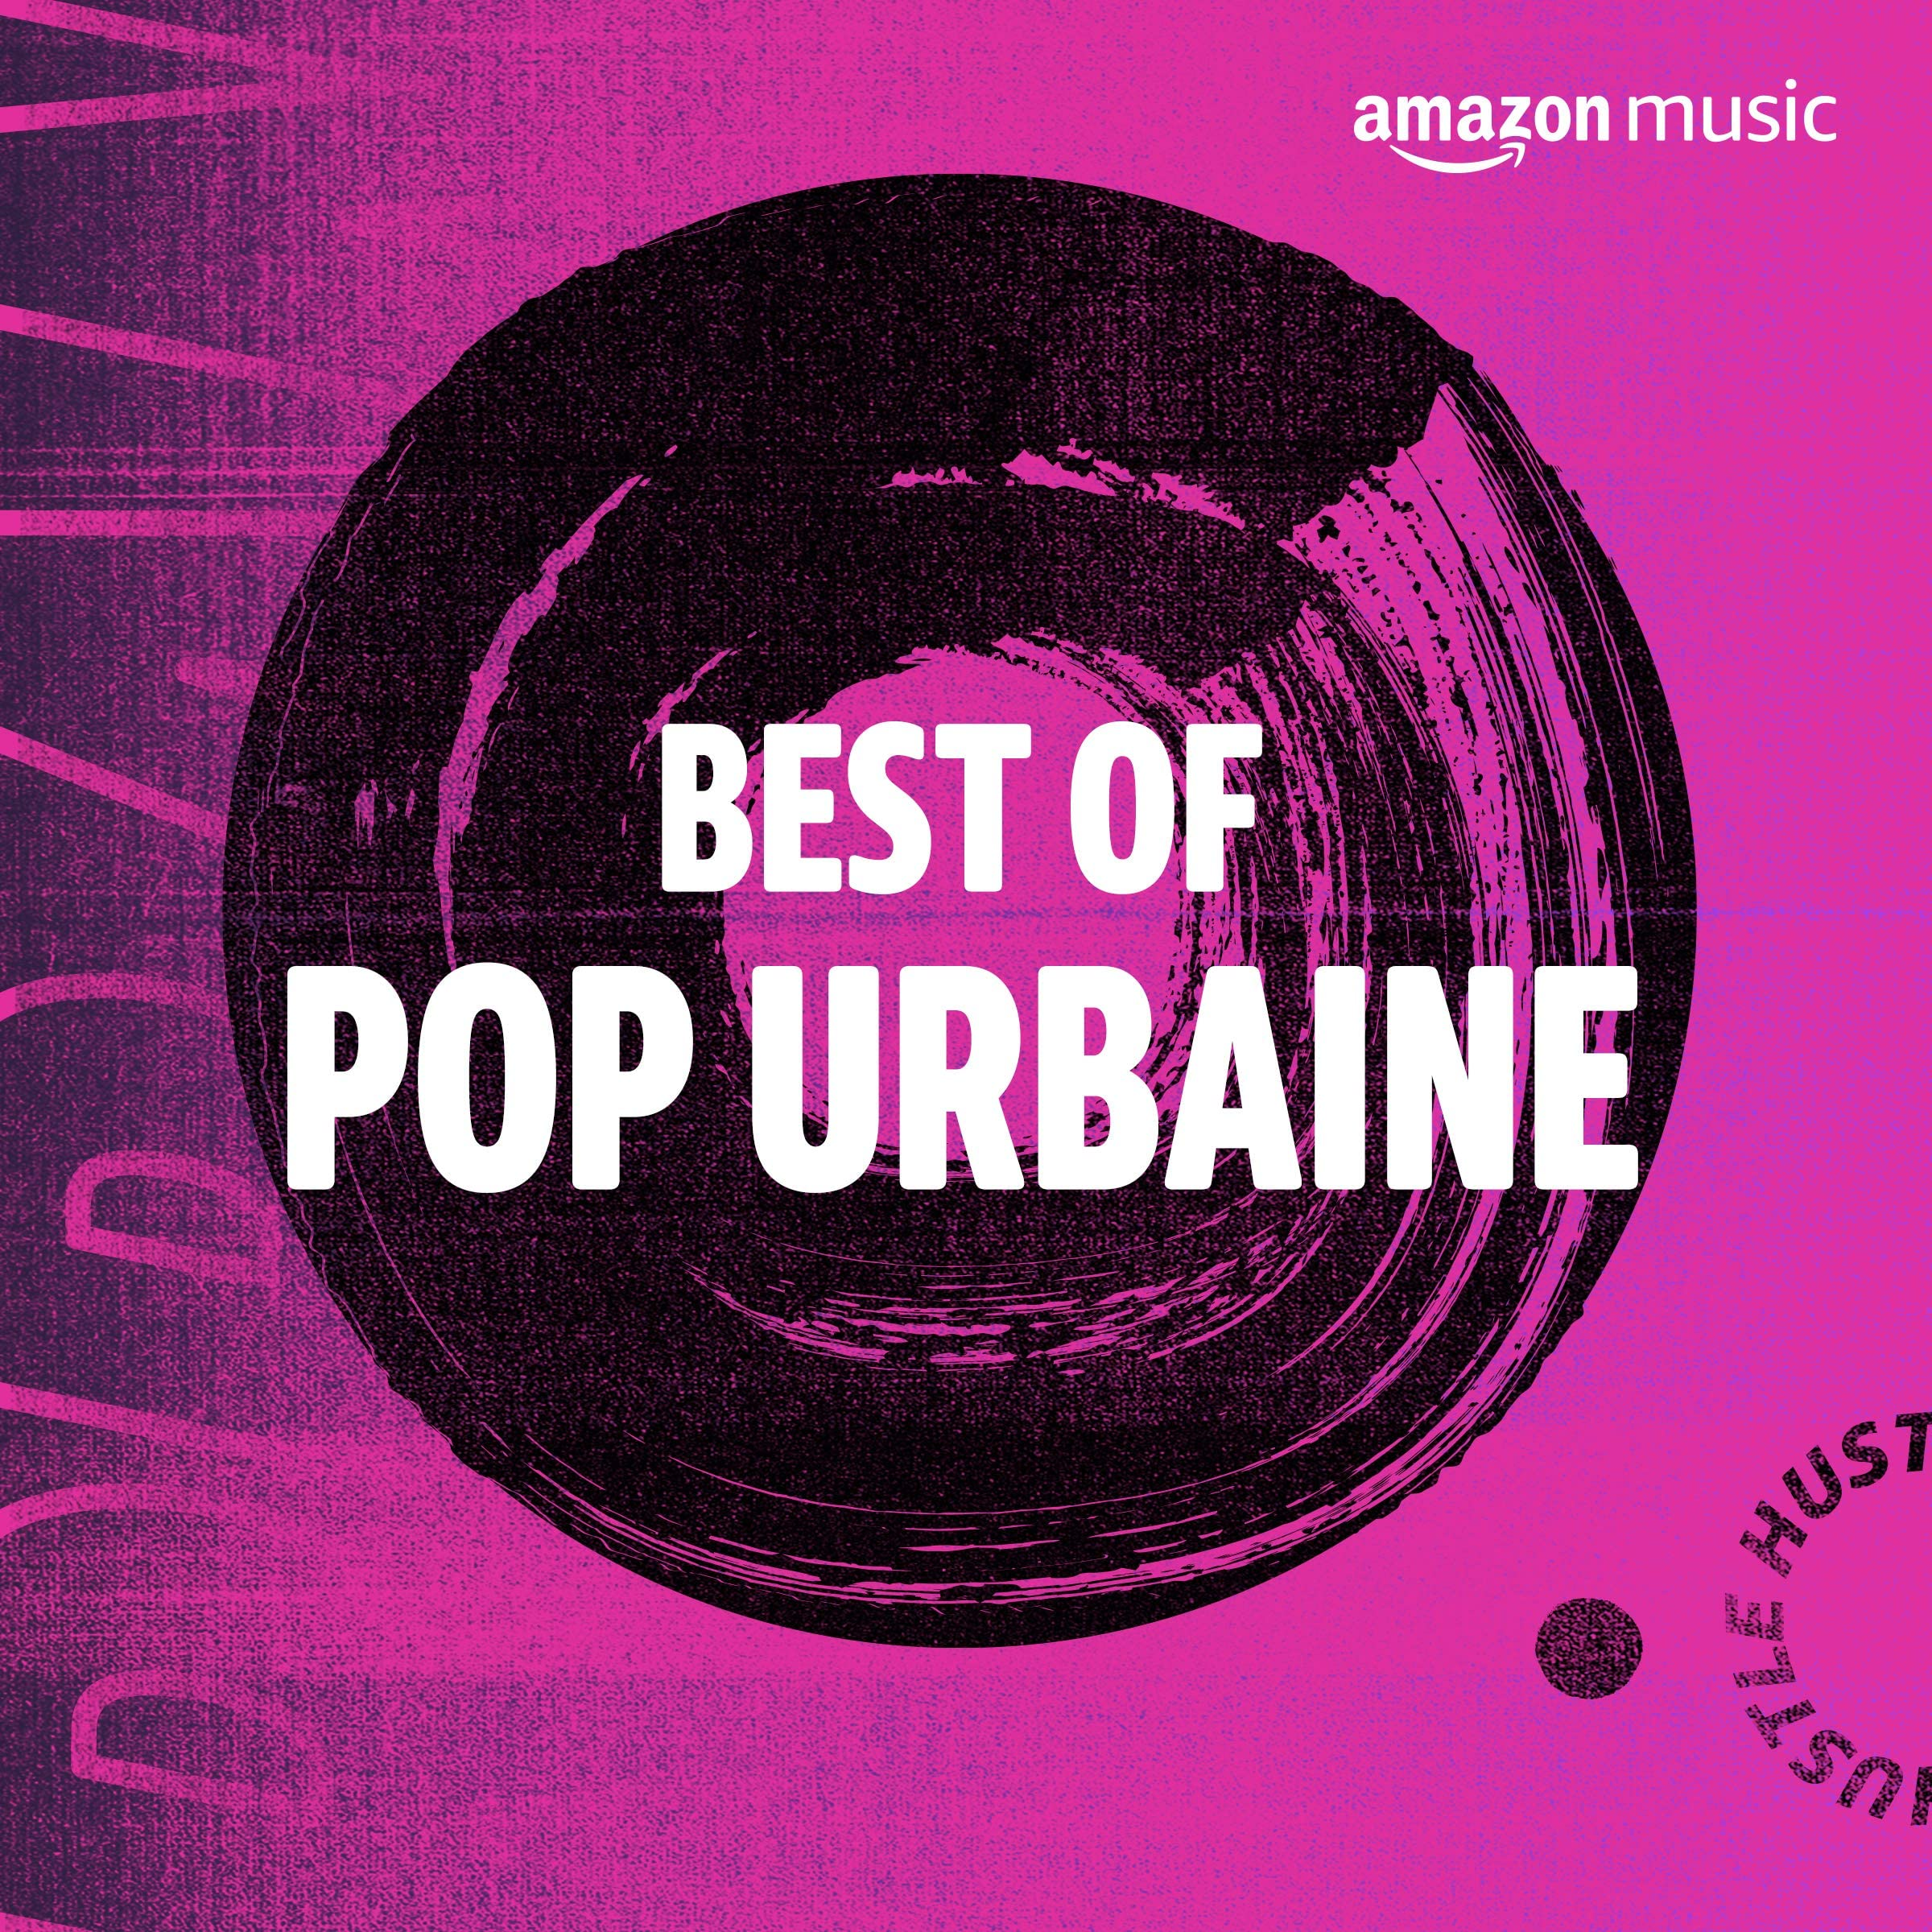 Best of Pop Urbaine